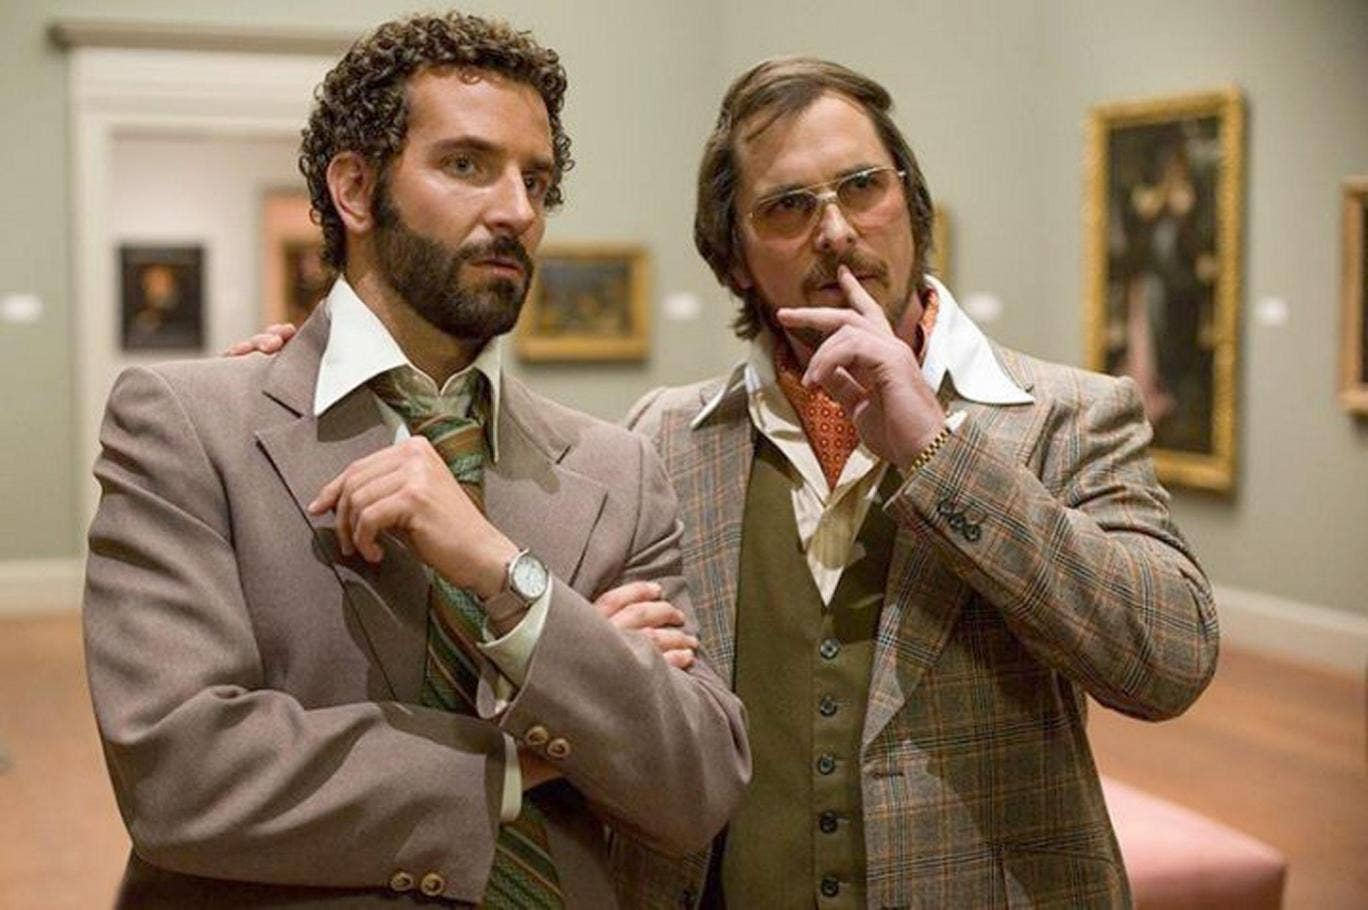 Movie scammers: Bradley Cooper and Christian Bale in American Hustle